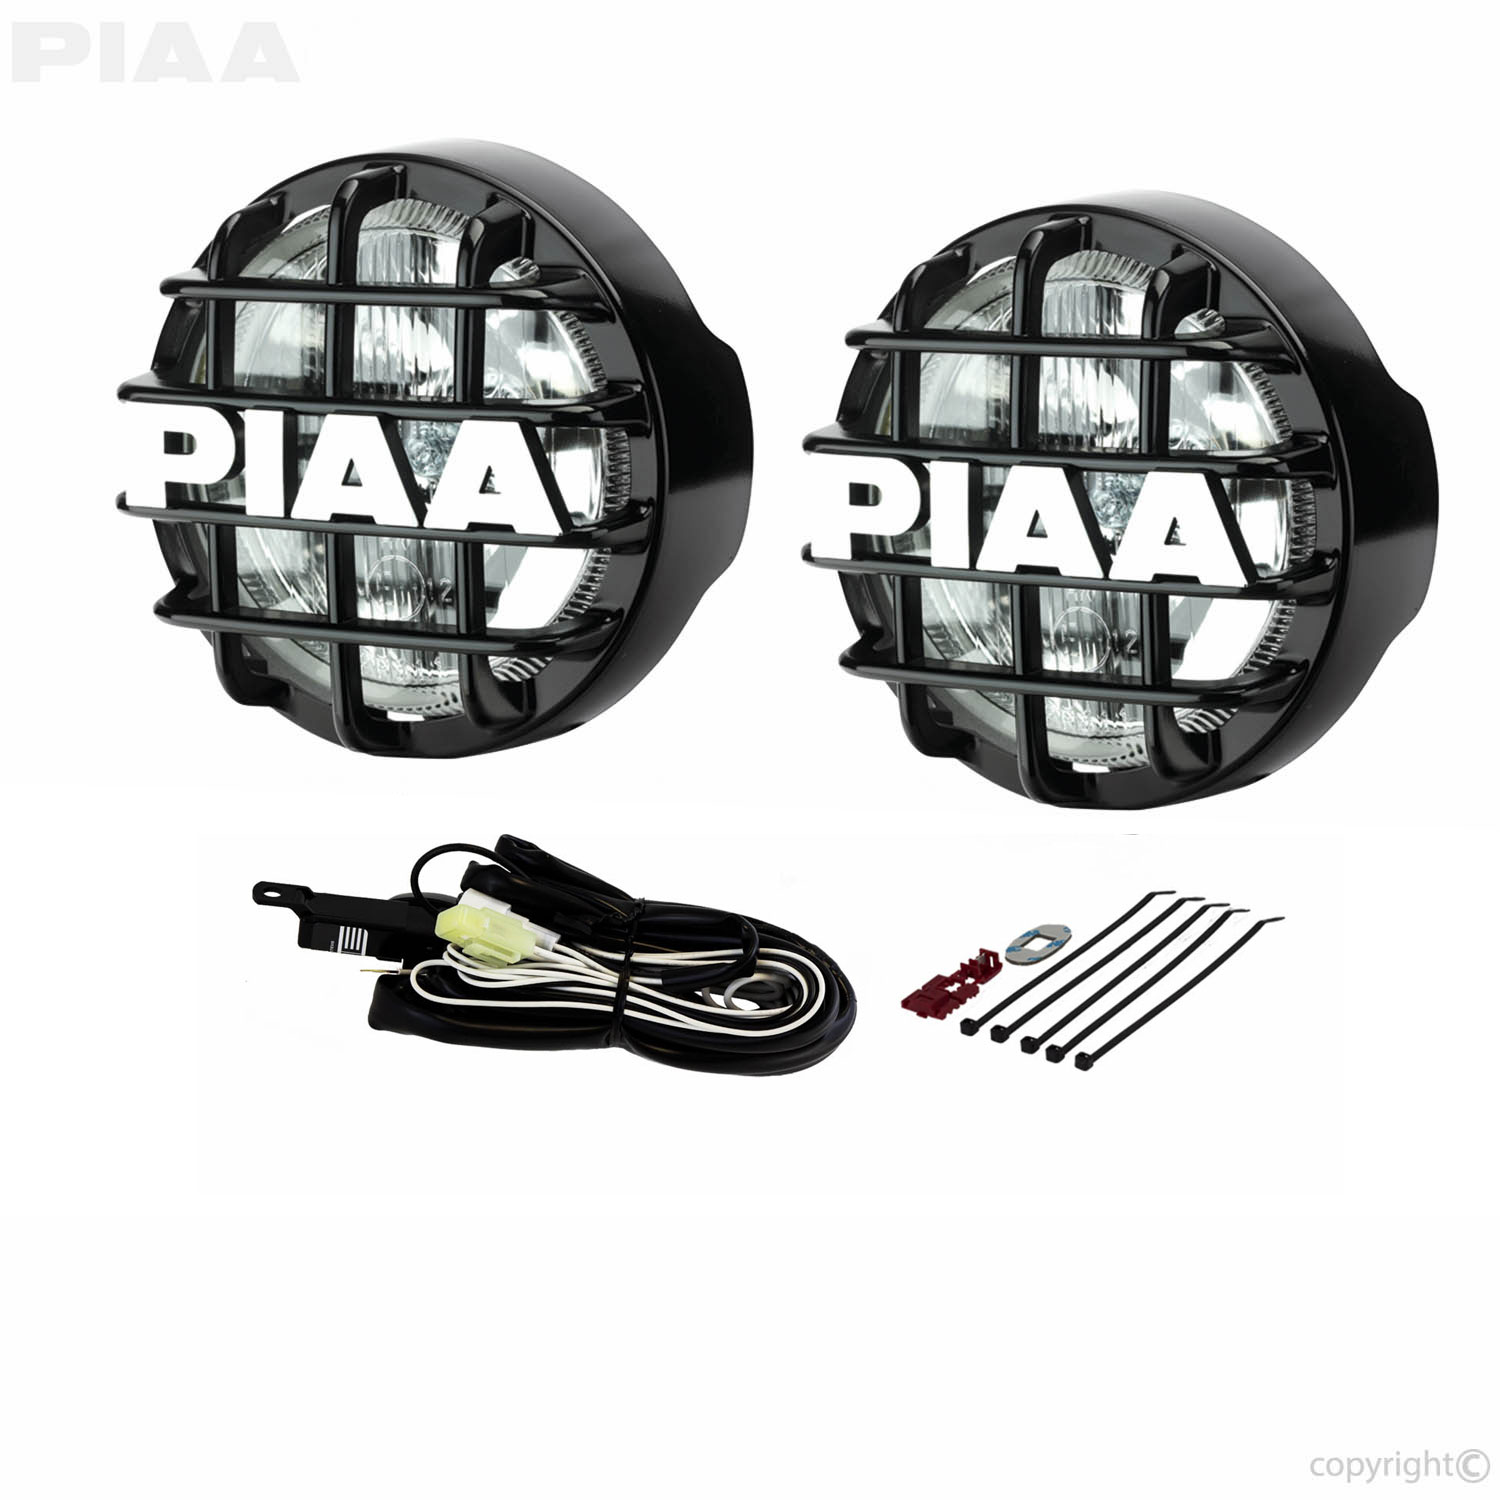 piaa 05164 510 contents hr?bw=1000&w=1000&bh=1000&h=1000 piaa 510 super white driving lamp kit 05164 piaa 520 wiring diagram at nearapp.co